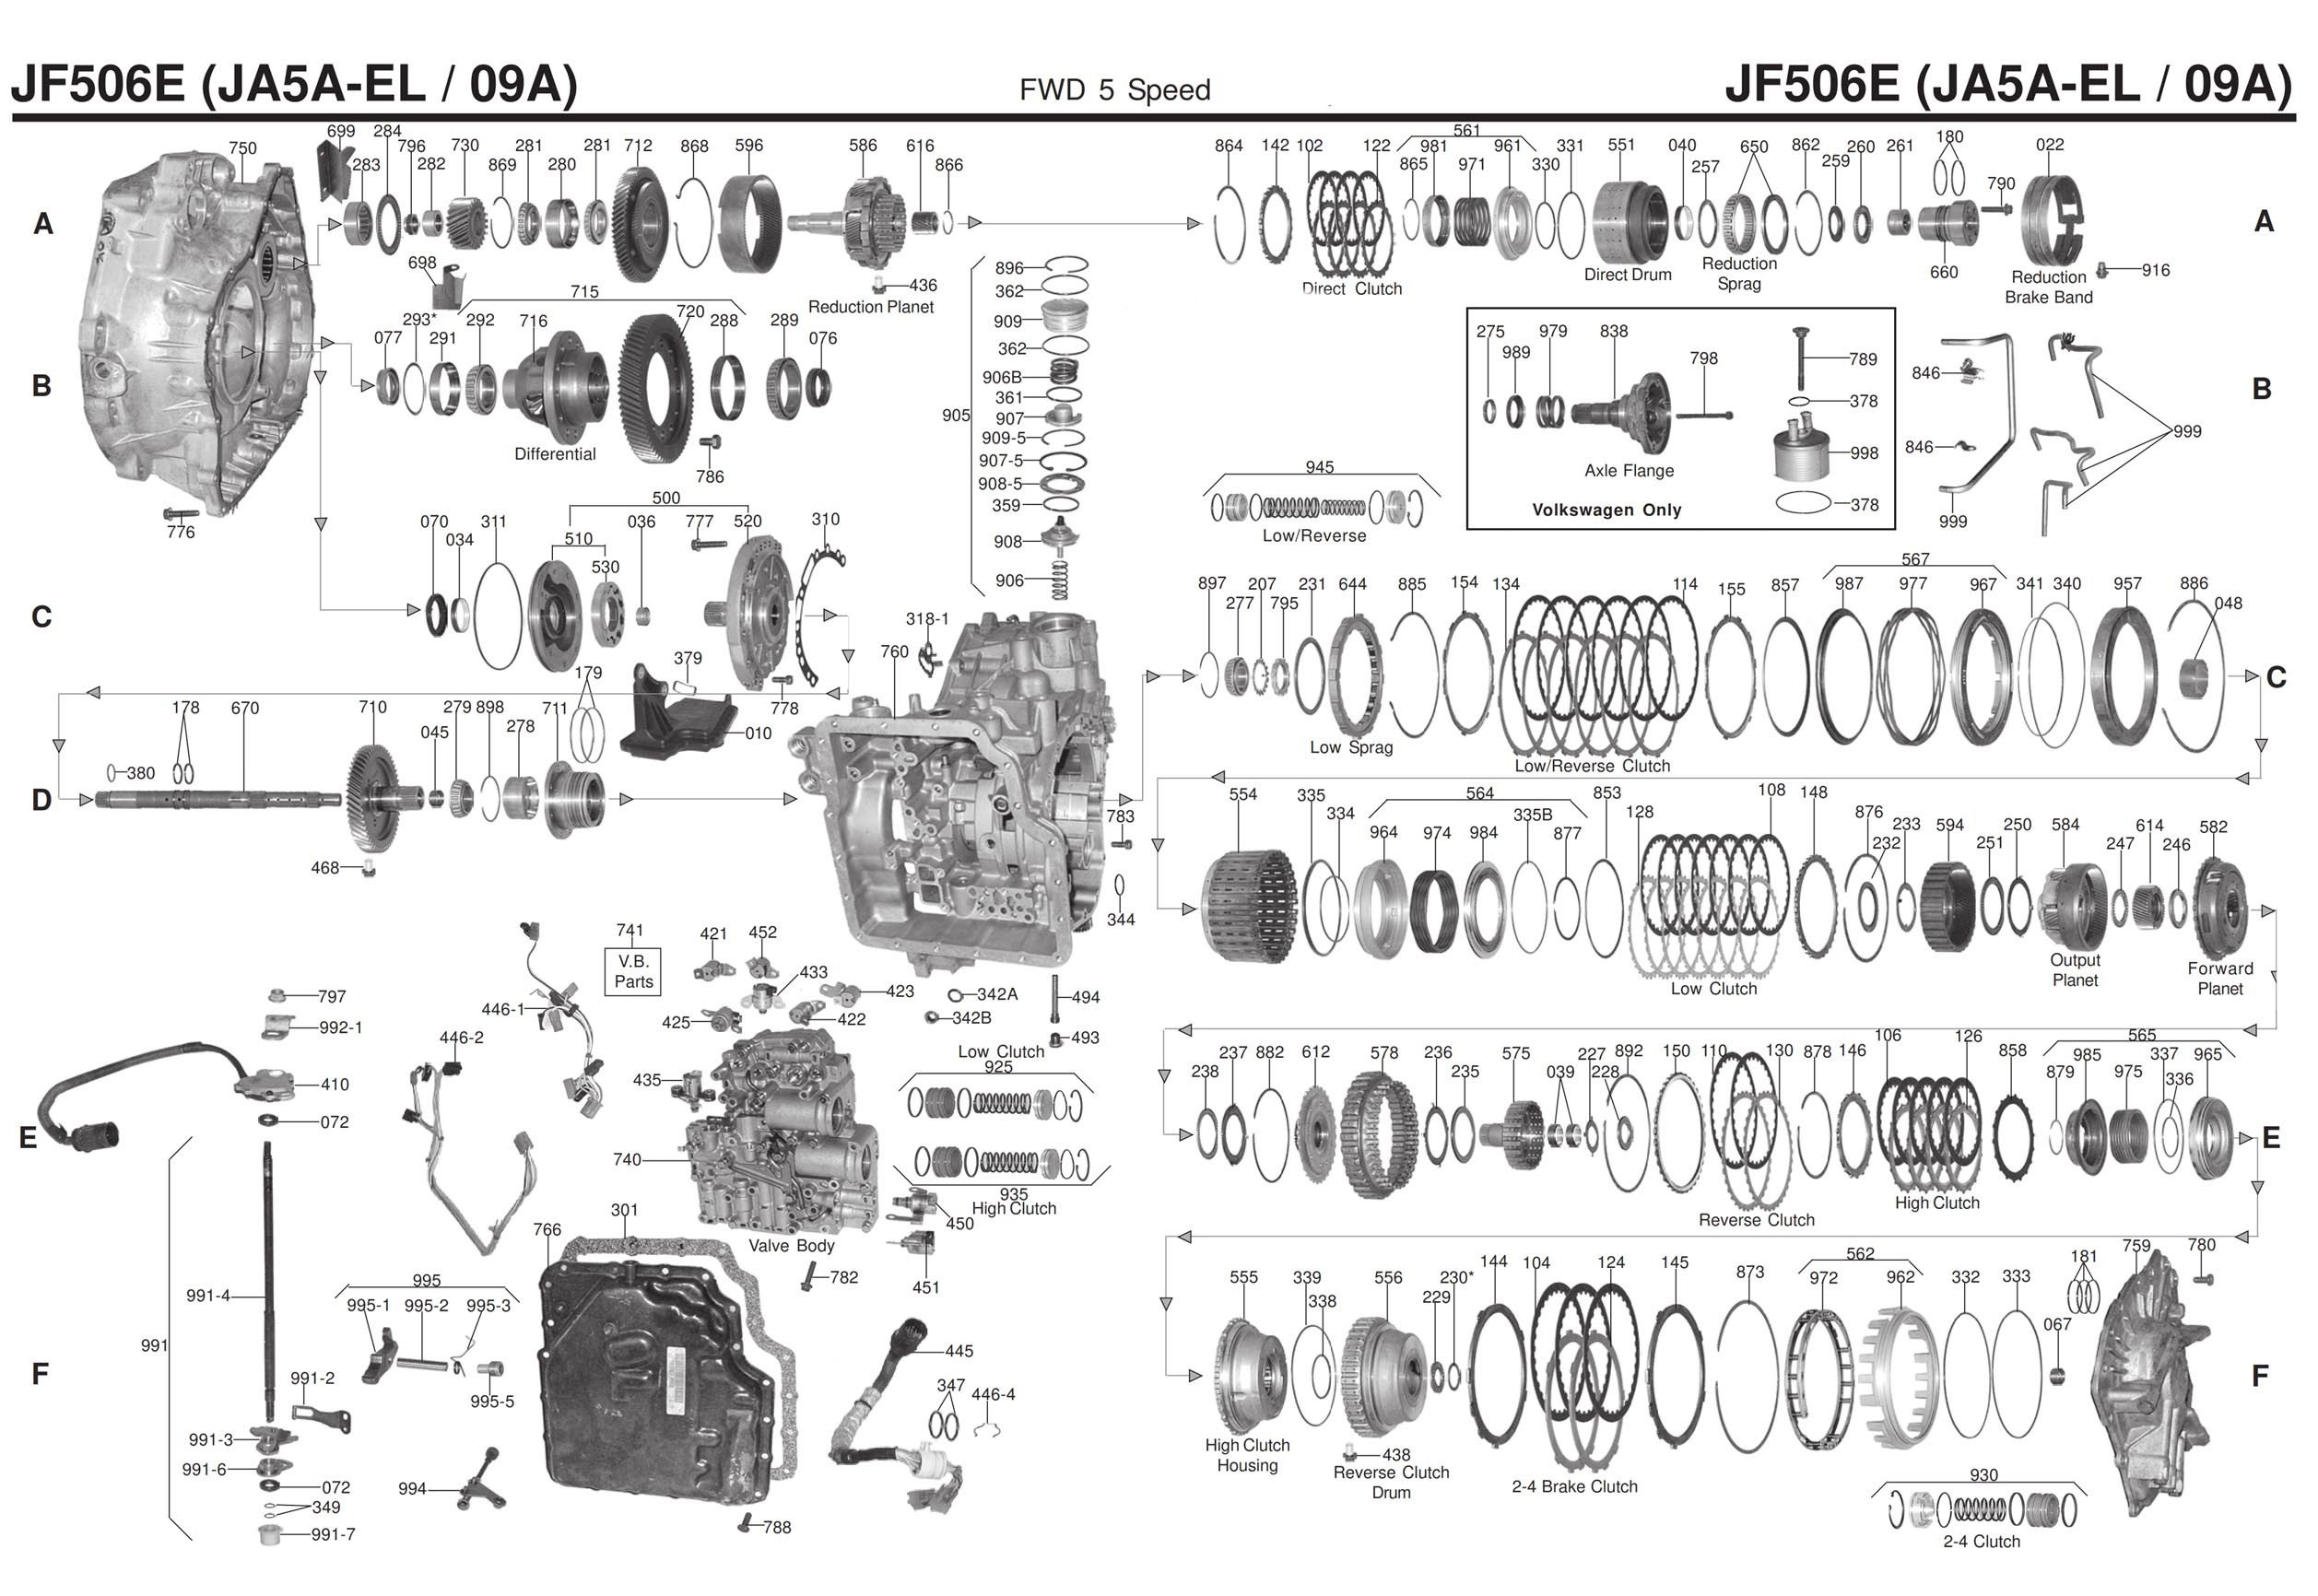 Transmission Repair Manuals 09a Vw Jf506e Ja5a El